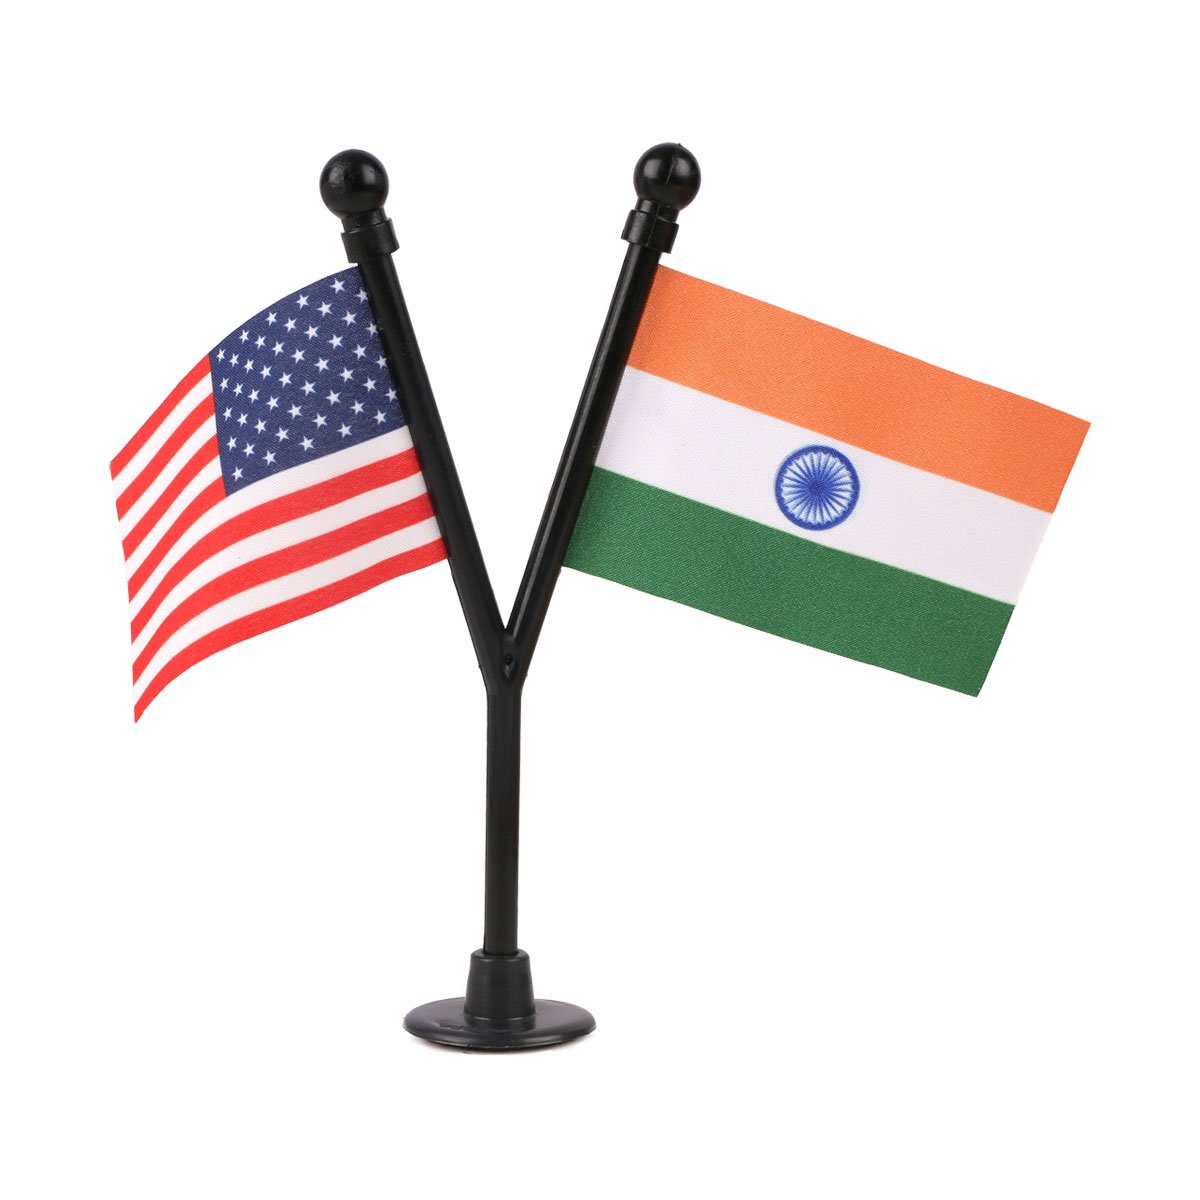 USA & India Miniature Car Dashboard Flags with A Black Y-Staff & Plastic Nano Base